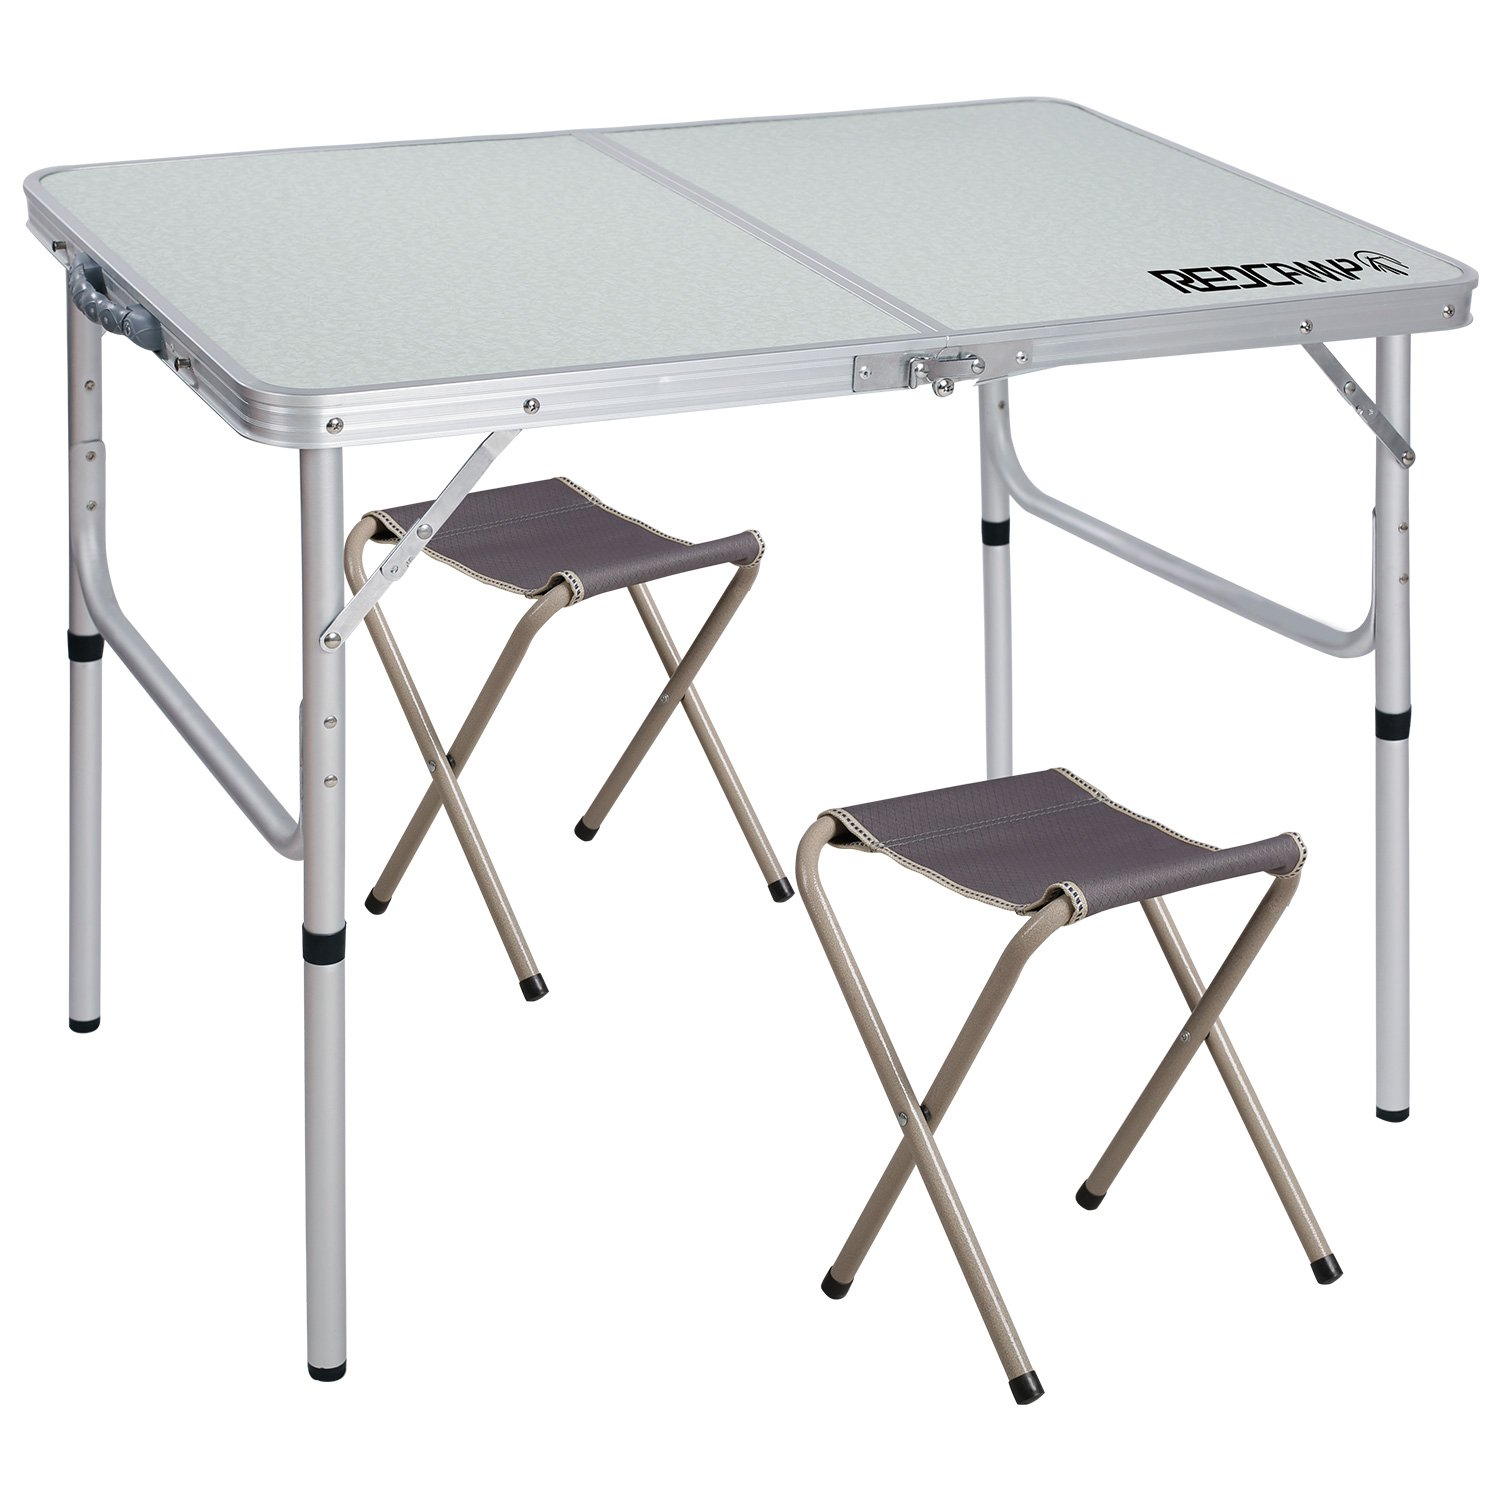 REDCAMP Folding Camping Table Adjustable, Portable Picnic Table with 2 Chairs, Aluminum White 35.4''x23.6''x15''/27.6''